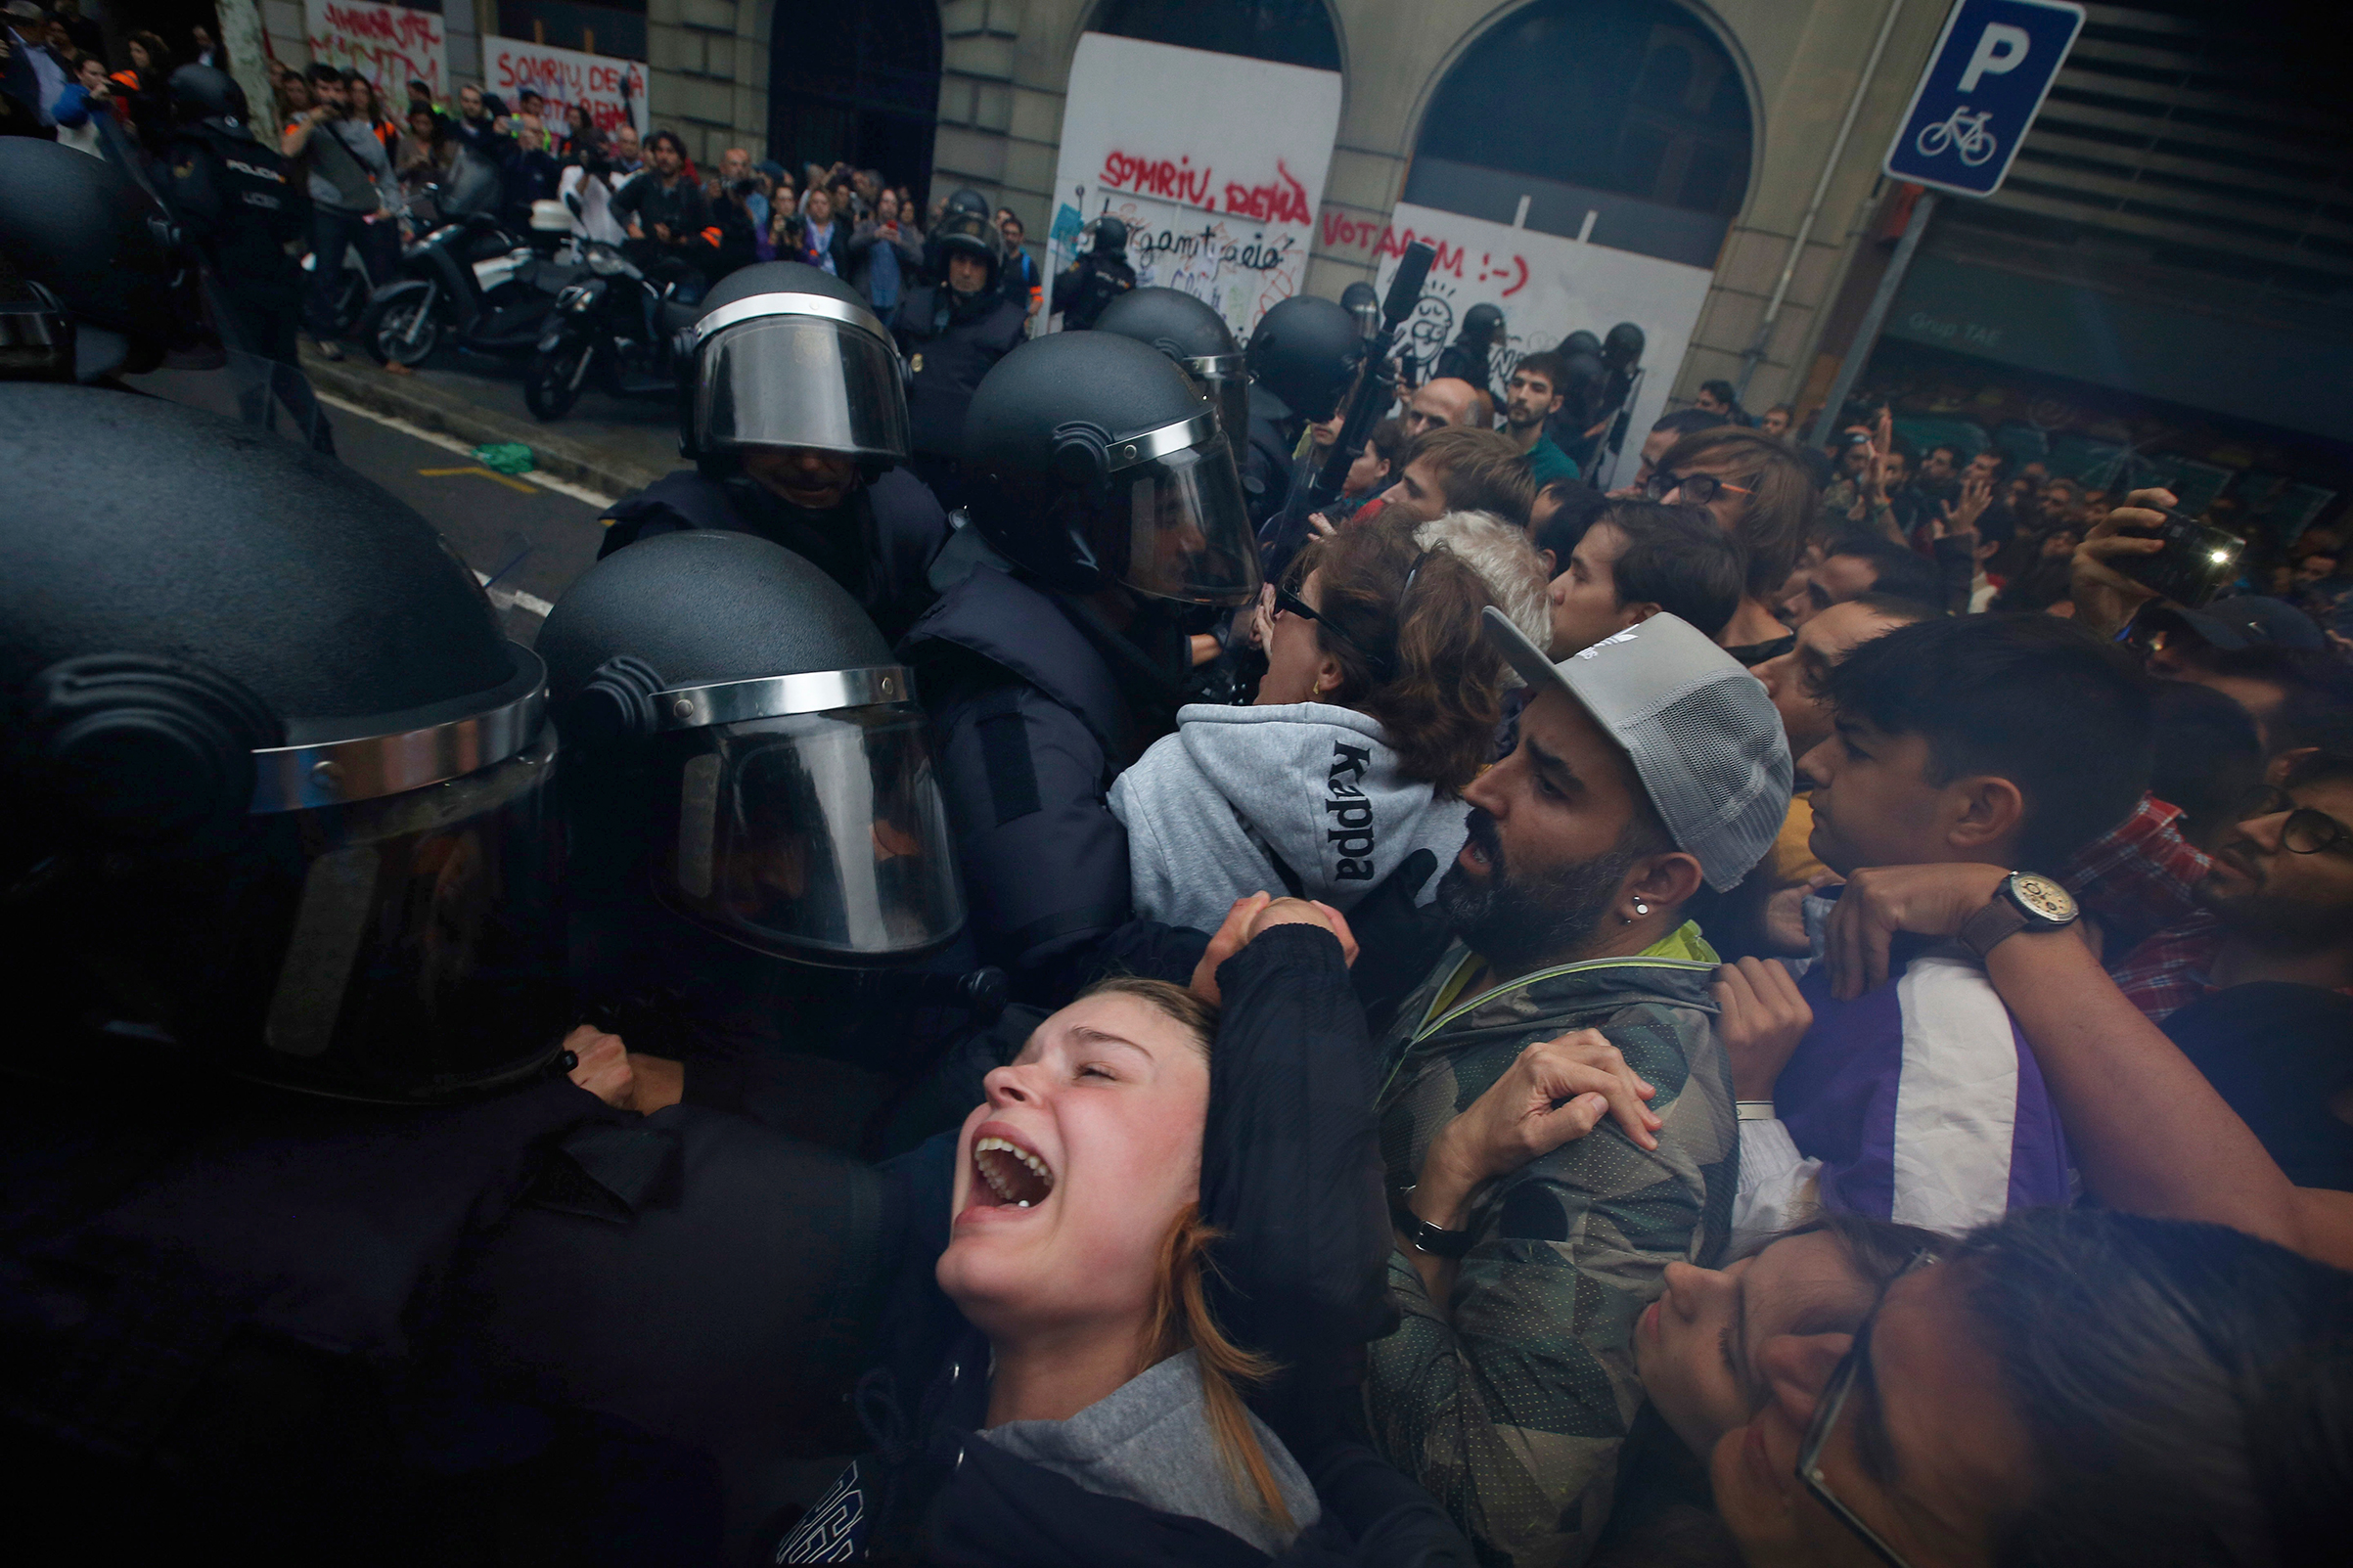 Spanish police push pro-referendum supporters outside a school assigned as a polling station in Barcelona on Oct. 1